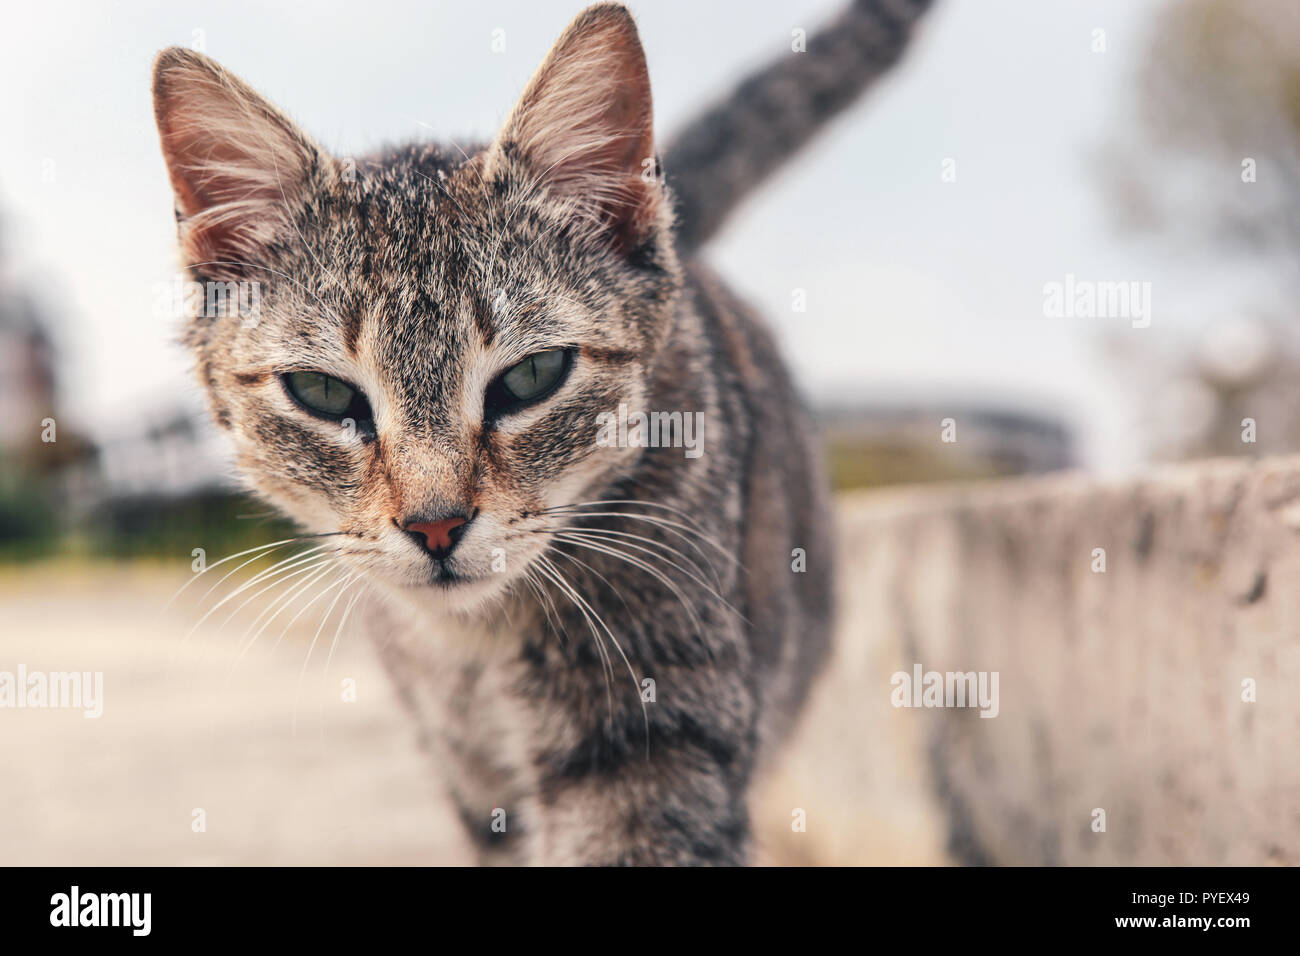 A beautiful cat on the street Stock Photo